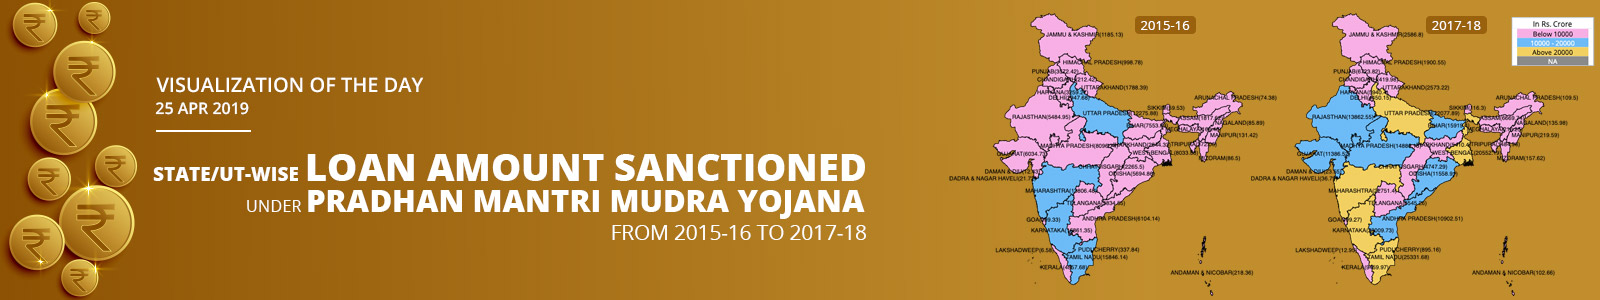 Visualization of the Day - 25th April 2019 : State/UT-wise Loan Amount Sanctioned under Pradhan Mantri Mudra Yojana from 2015-16 to 2017-18